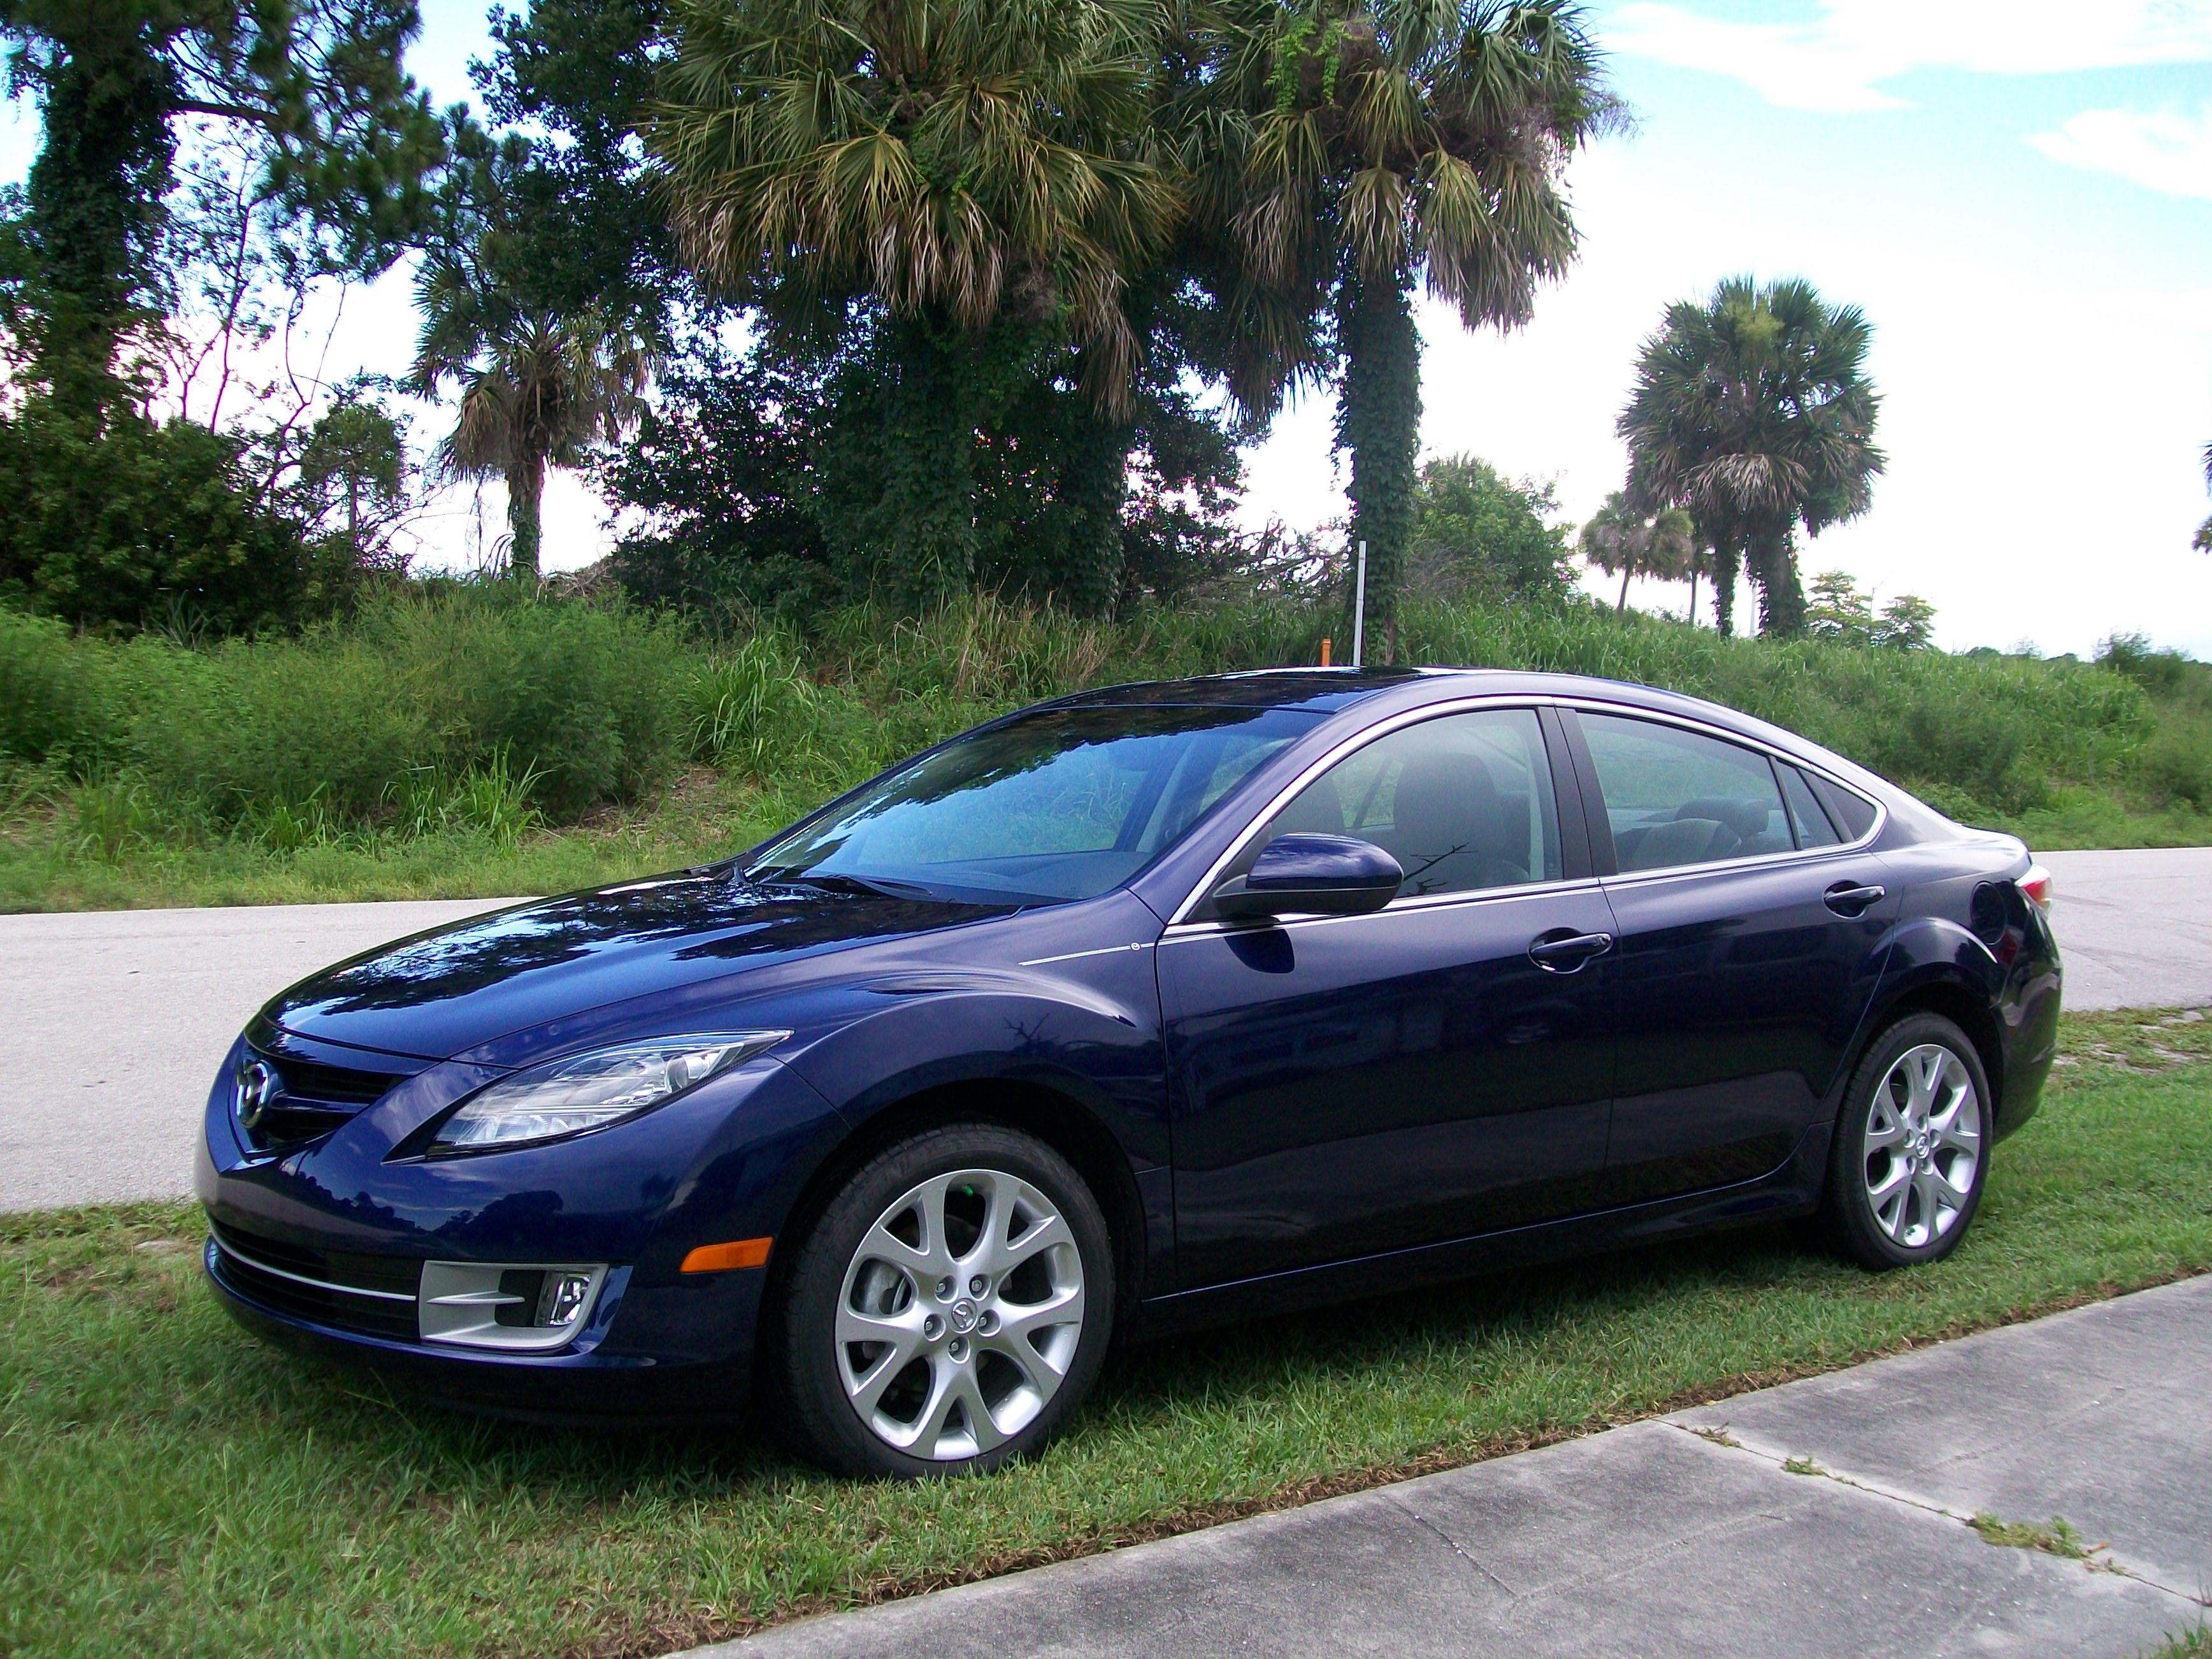 apr1801 39 s 2010 mazda mazda6 s grand touring sedan 4d in sebastian fl. Black Bedroom Furniture Sets. Home Design Ideas